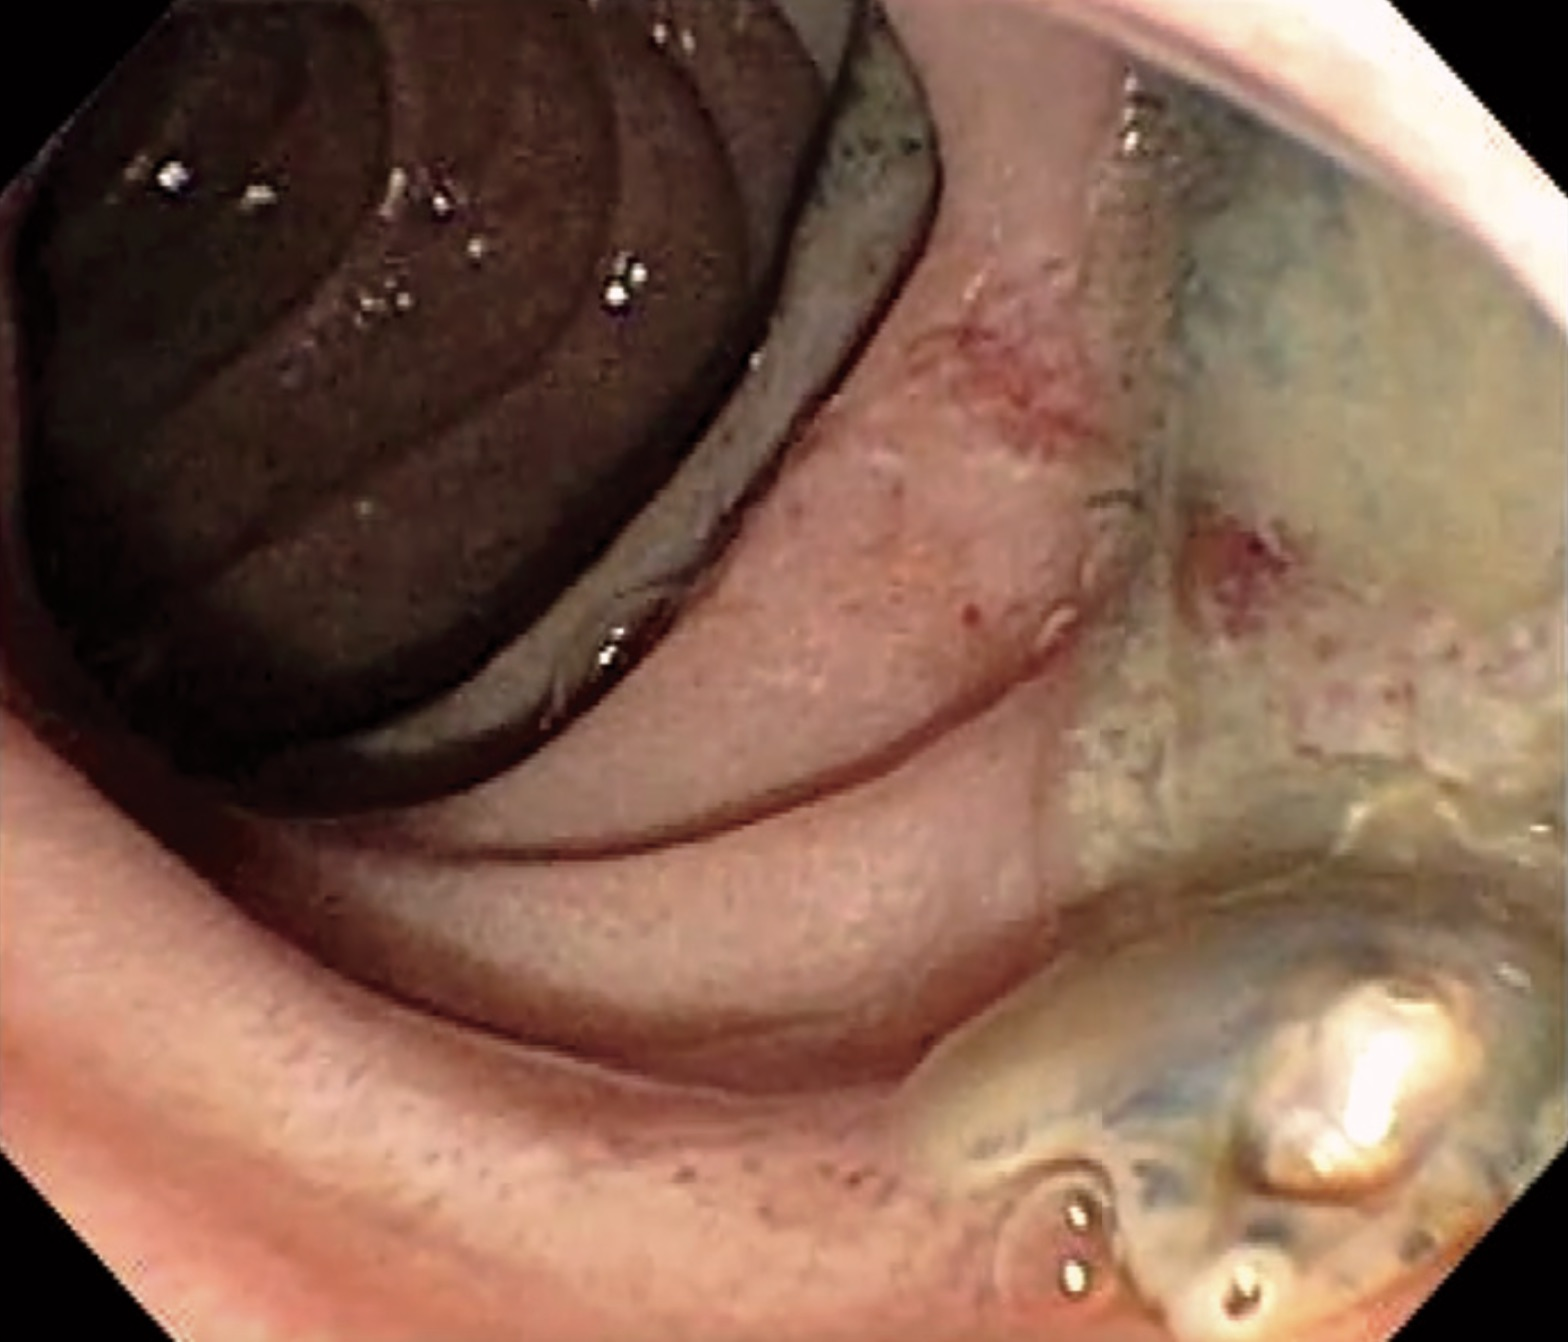 Fluke Parasite >> Watch As This Beautifully Disgusting Liver Fluke Parasite